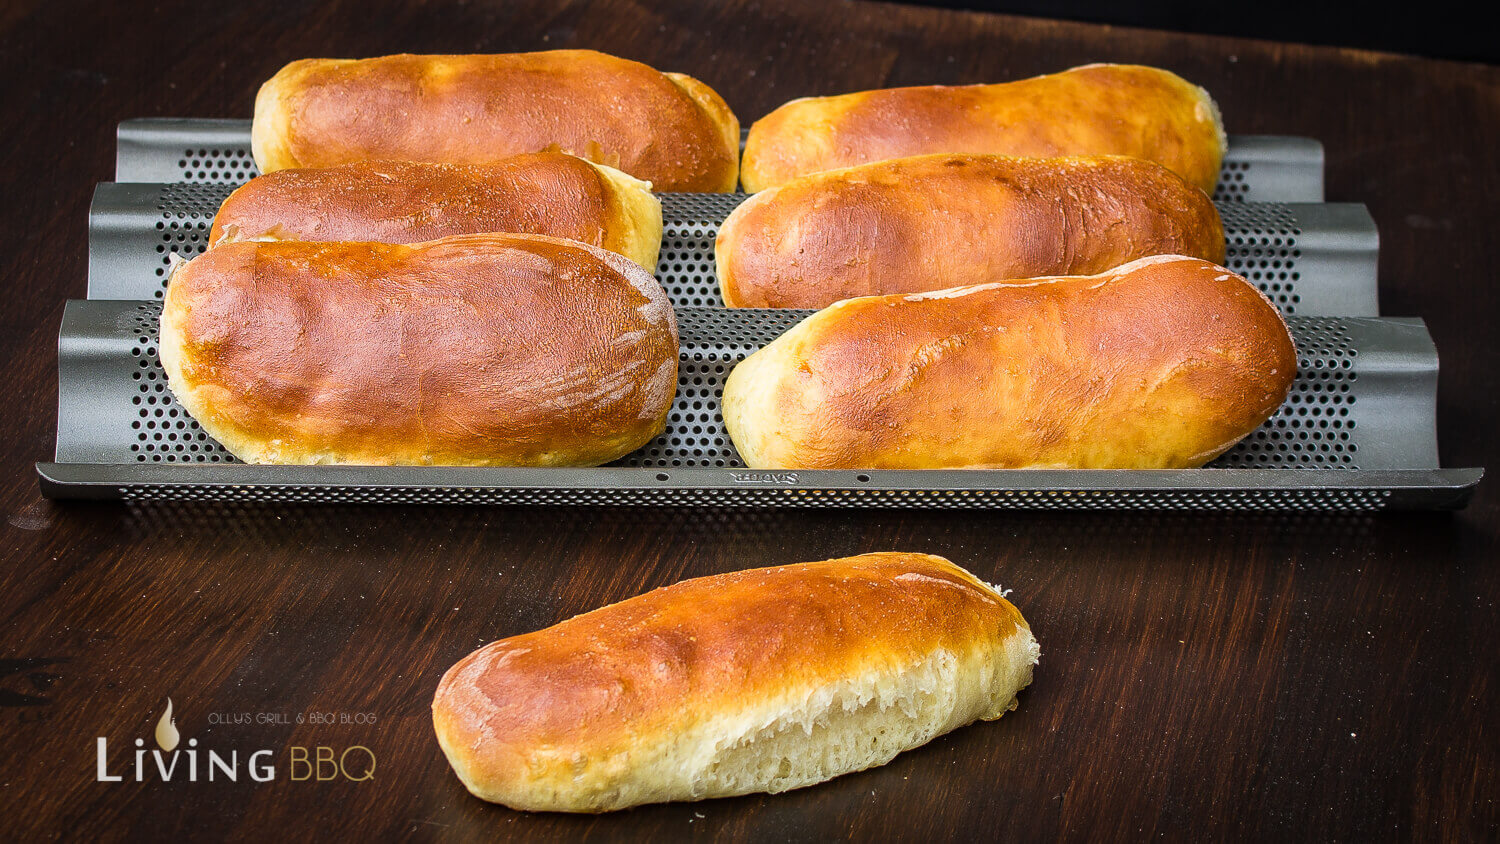 Hot Dog Buns auskühlen hot dog brötchen_Hot Dog Buns 1 von 6